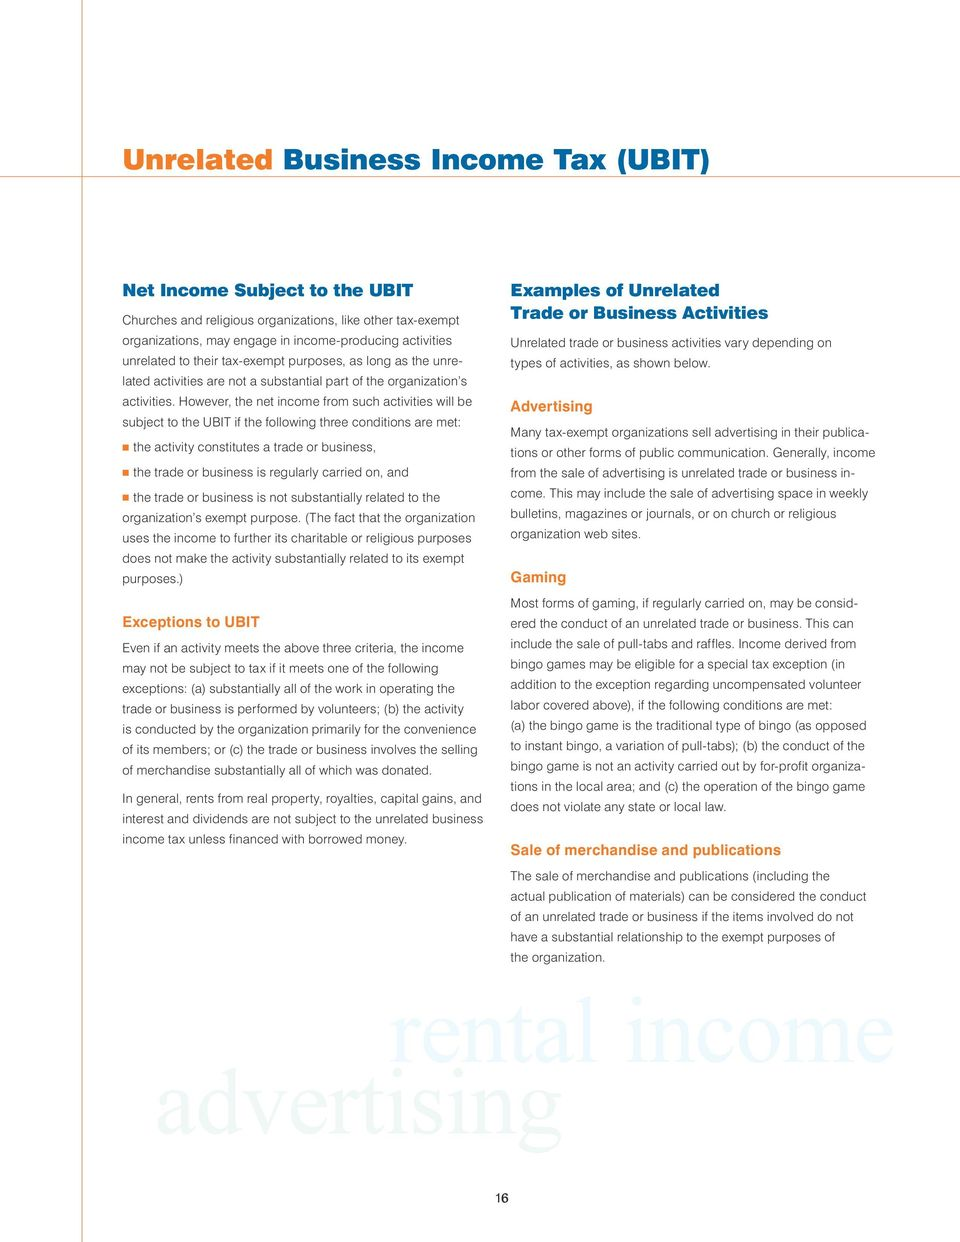 However, the net income from such activities will be subject to the UBIT if the following three conditions are met: n the activity constitutes a trade or business, n the trade or business is